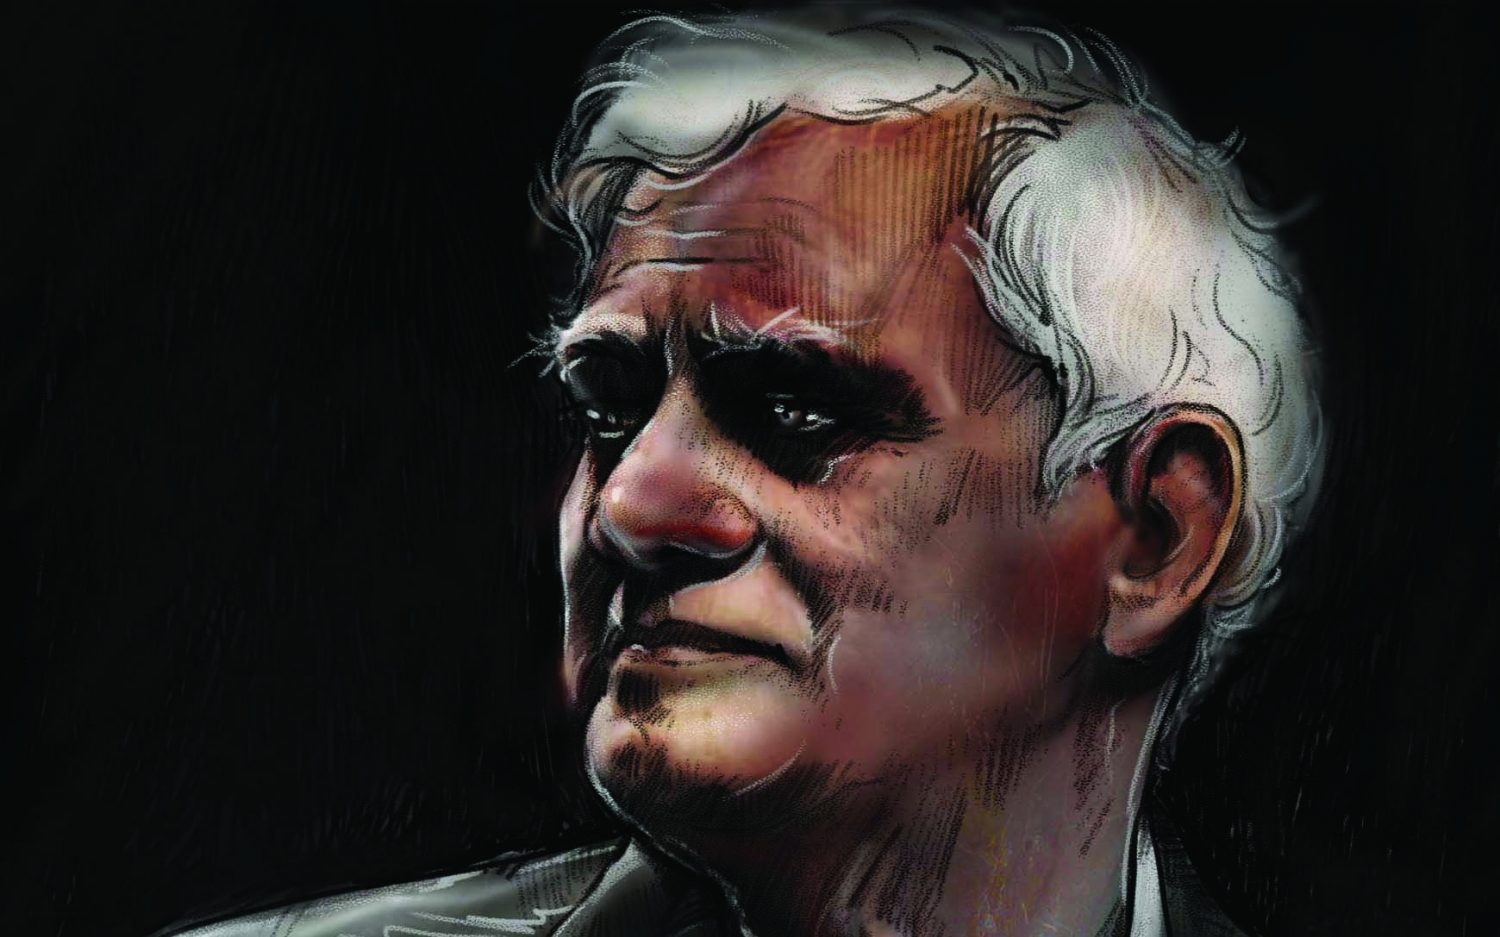 Fallout from Ravi Zacharias' abuse begins